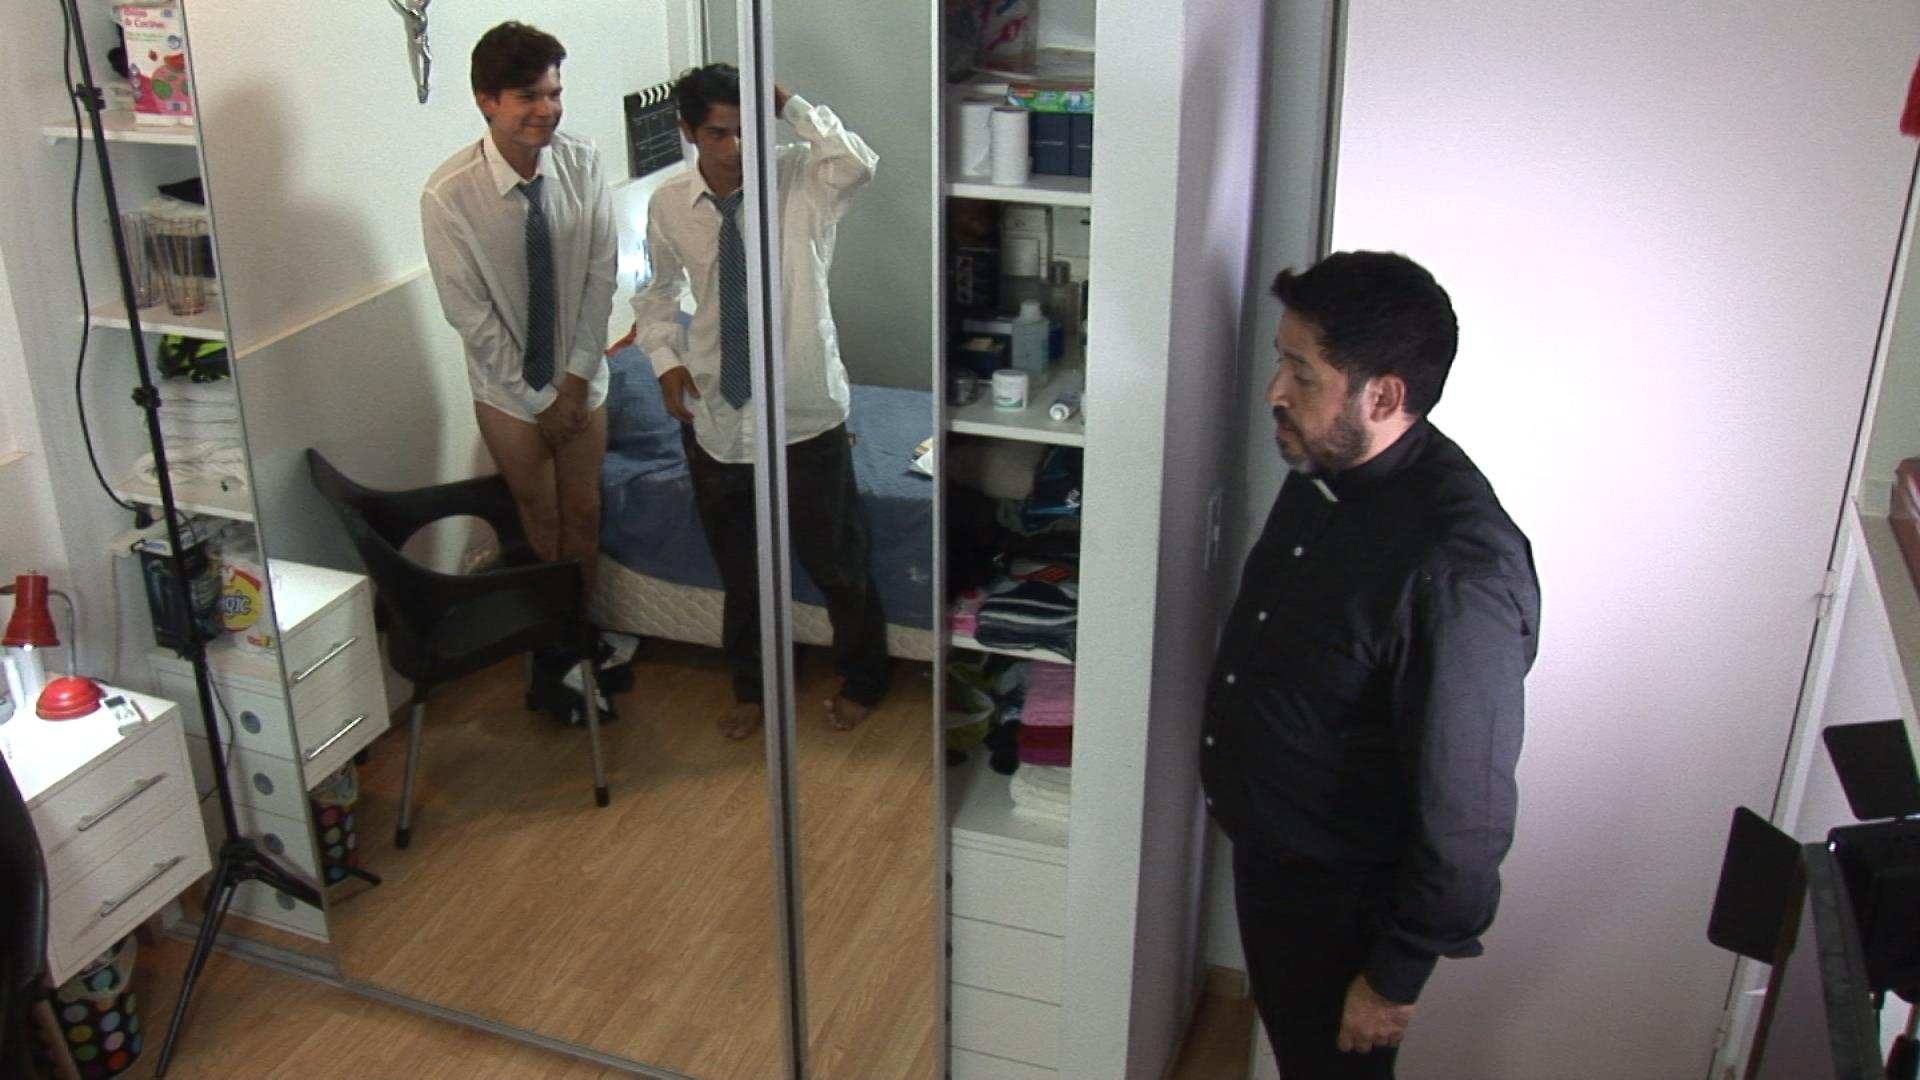 Bareback-Me-Daddy-Gay-Priest-Fucking-College-Students-07 Latin School Twinks Get Fucked By Their Older Catholic Priest